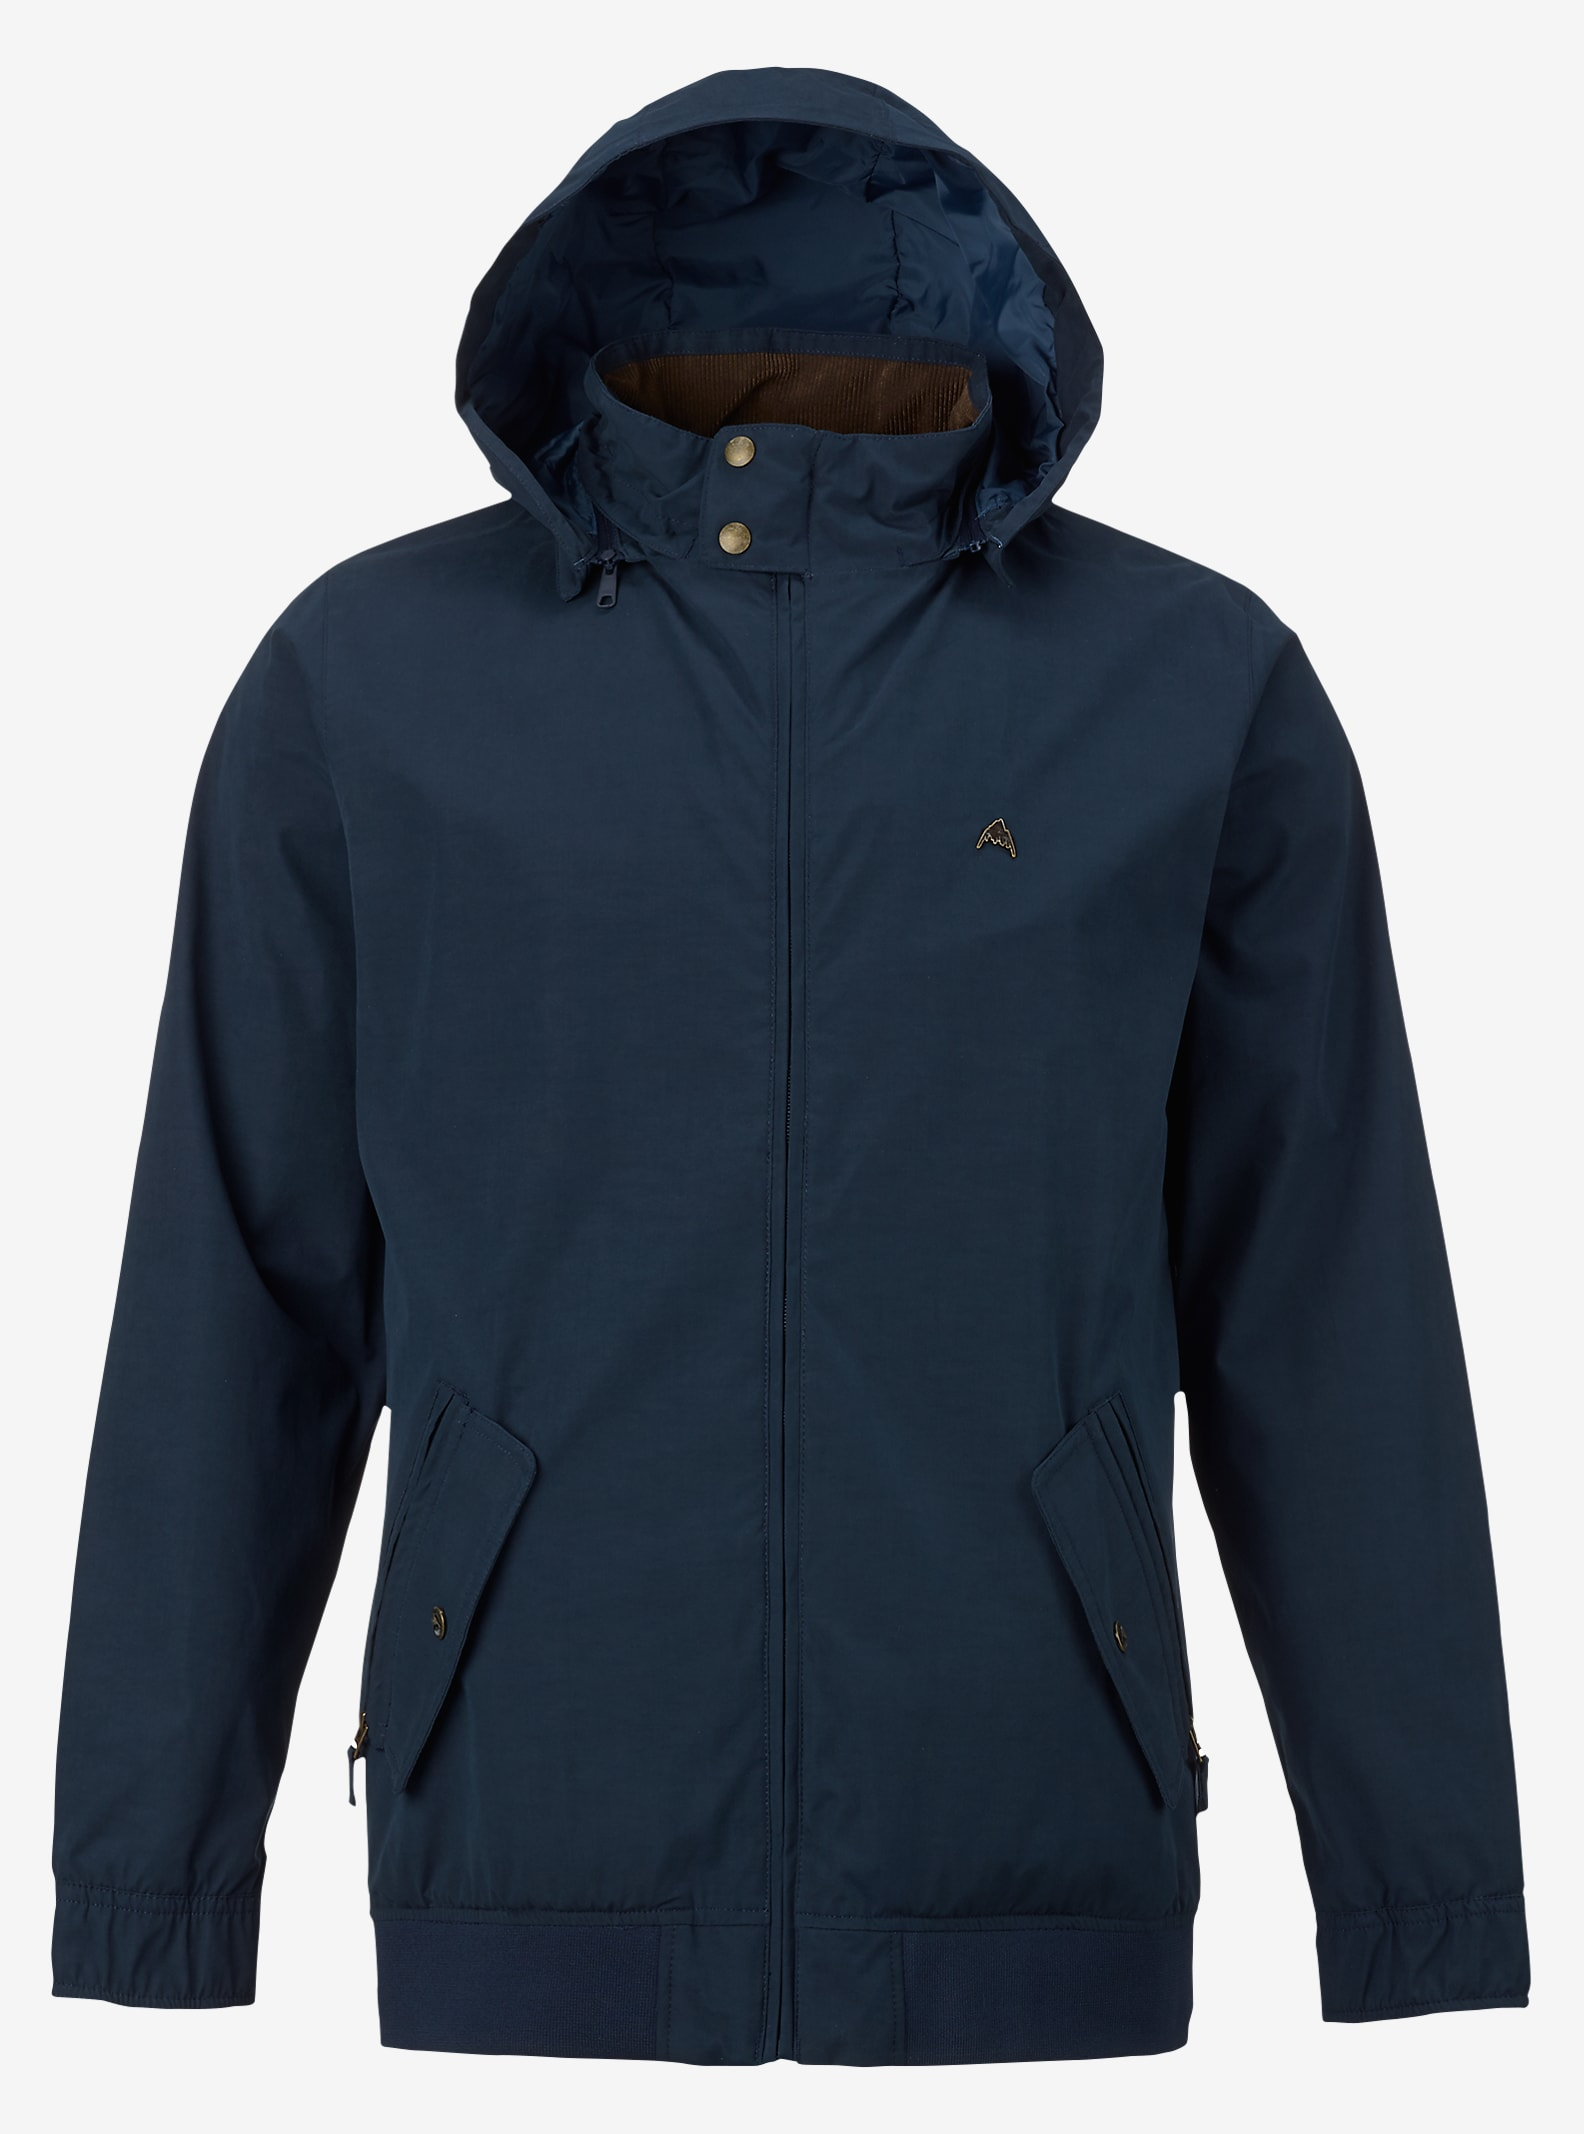 Burton Barracuda Jacket shown in Eclipse